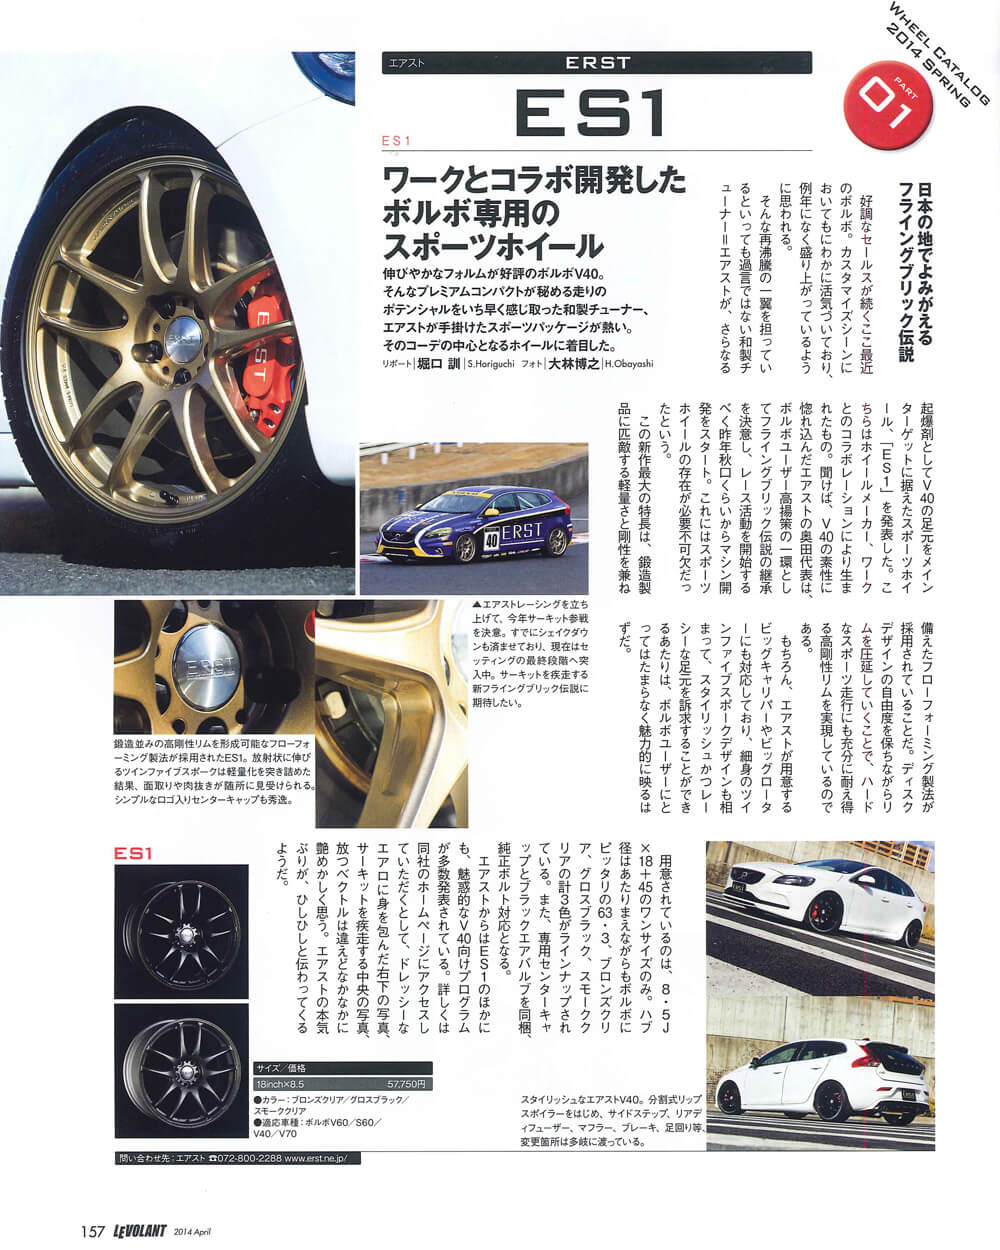 LEVOLANT Apr. issue